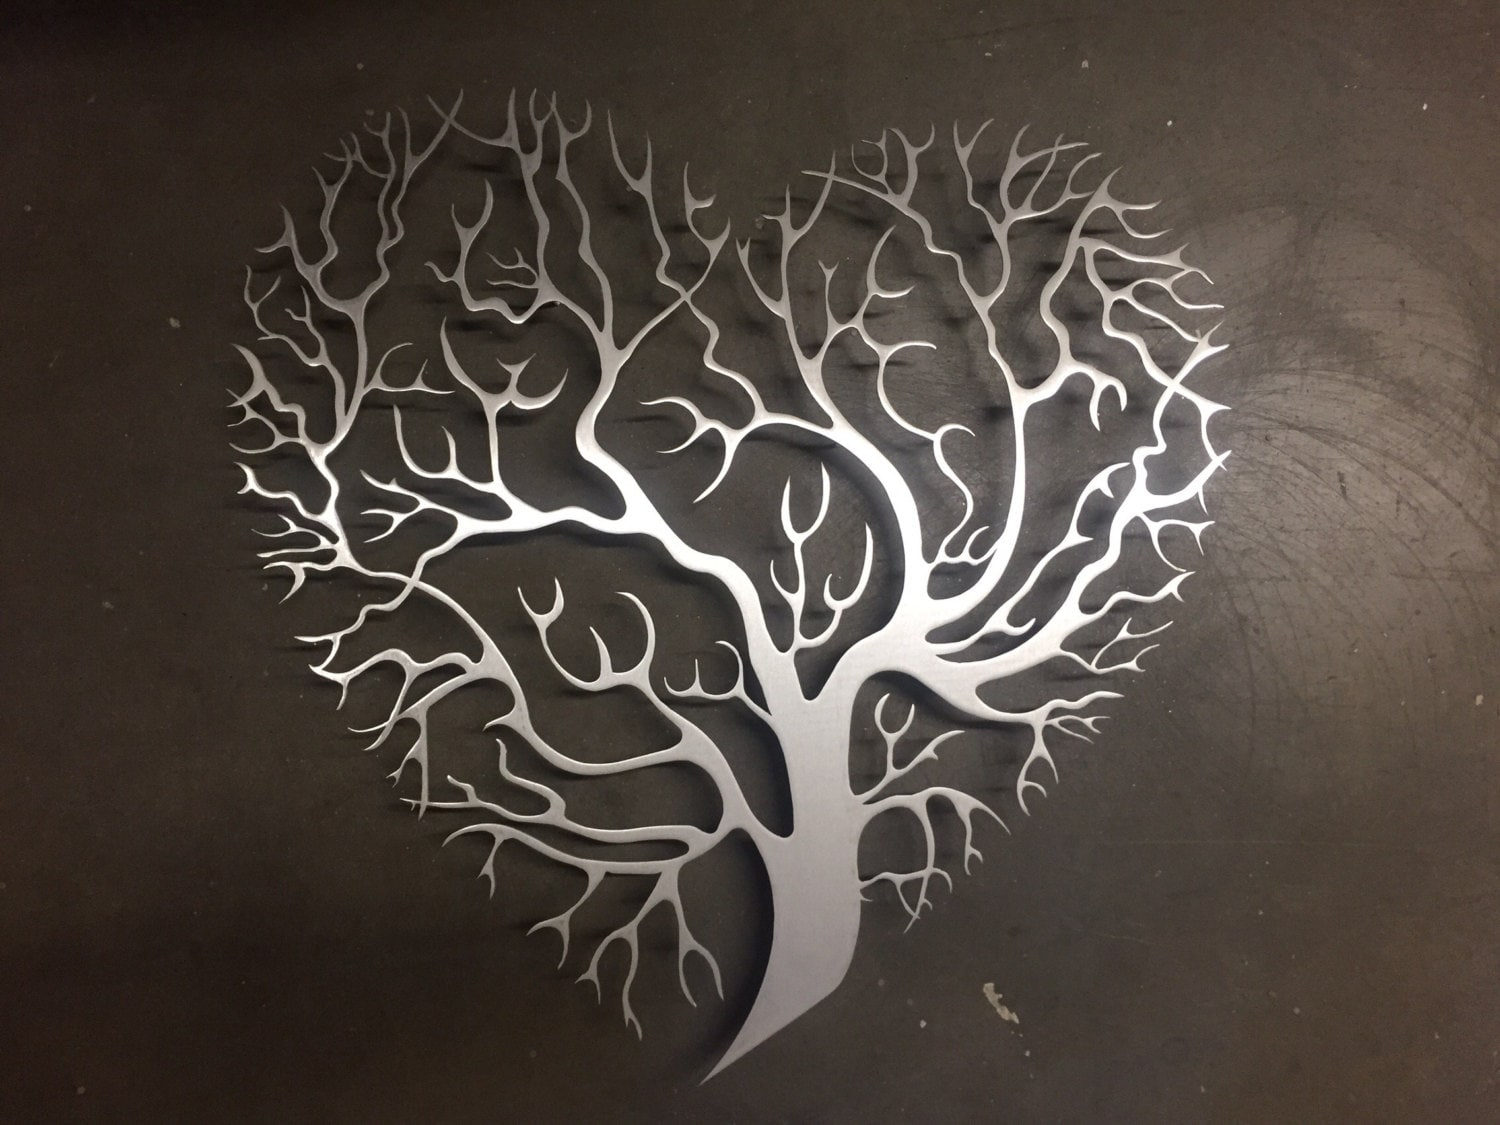 Ordinaire Description. Heart Shaped Tree Metal Wall Art ...